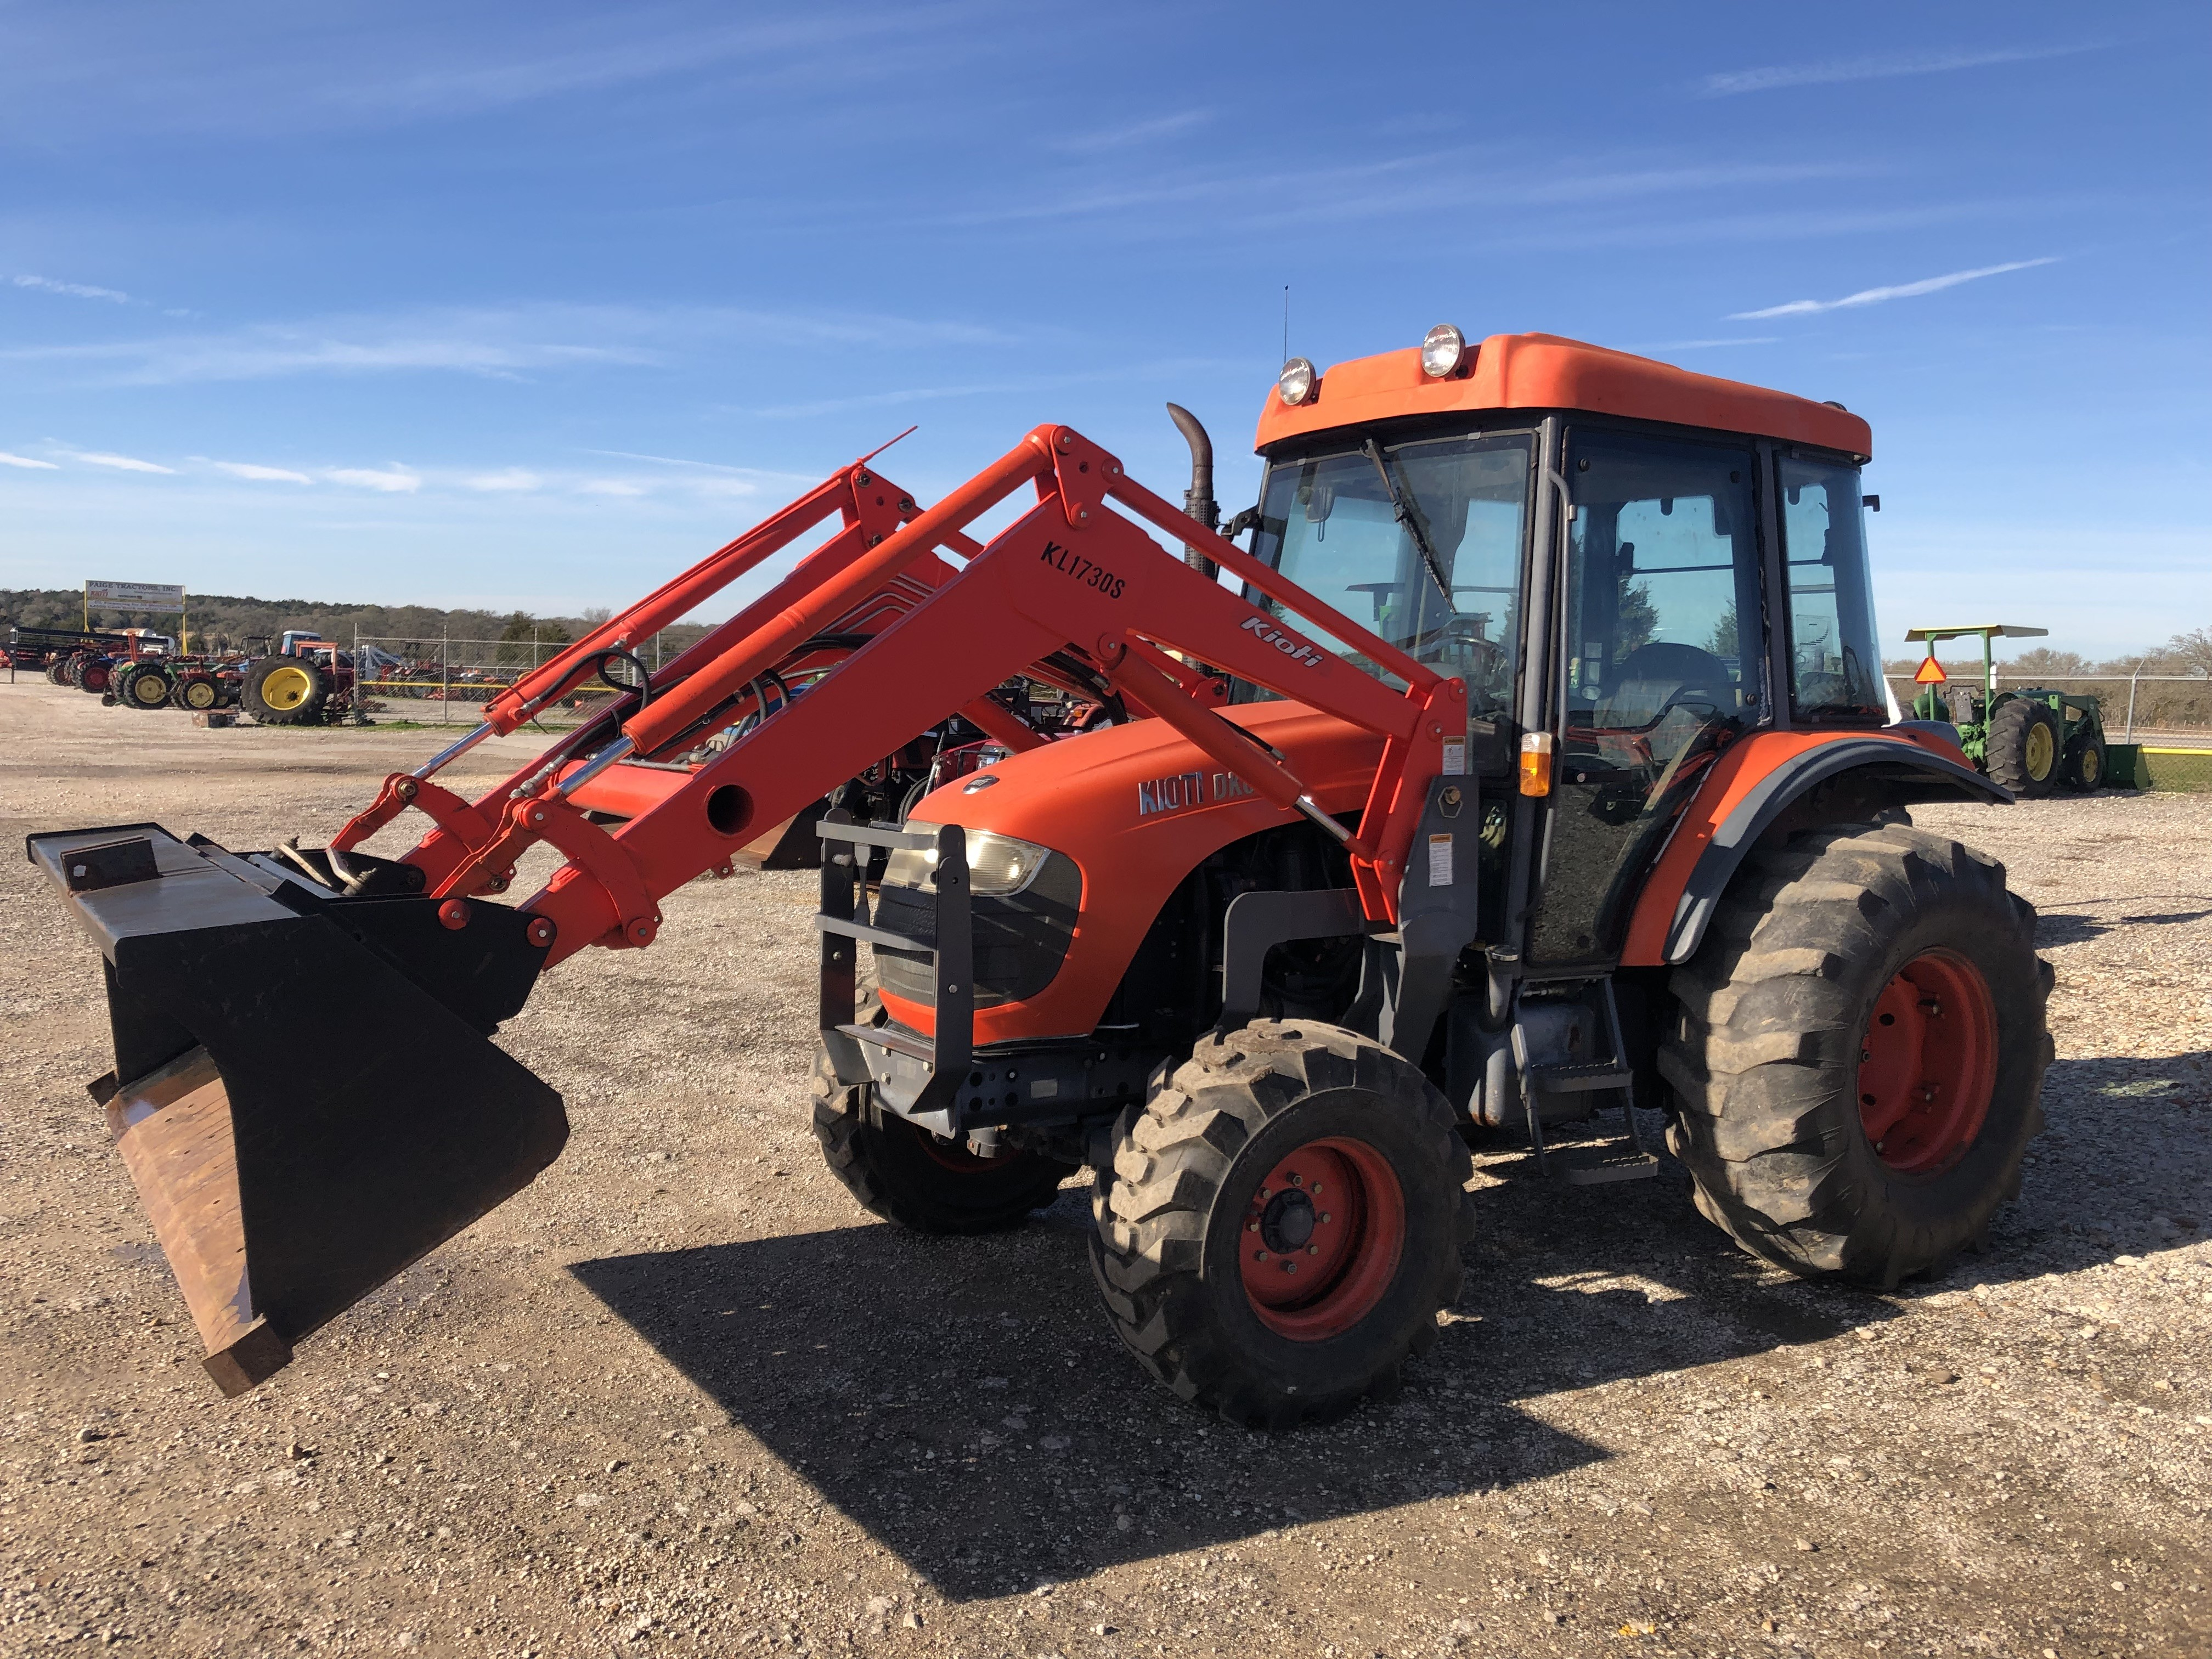 50 Horsepower Tractors For Sale   Used Tractor For Sale In